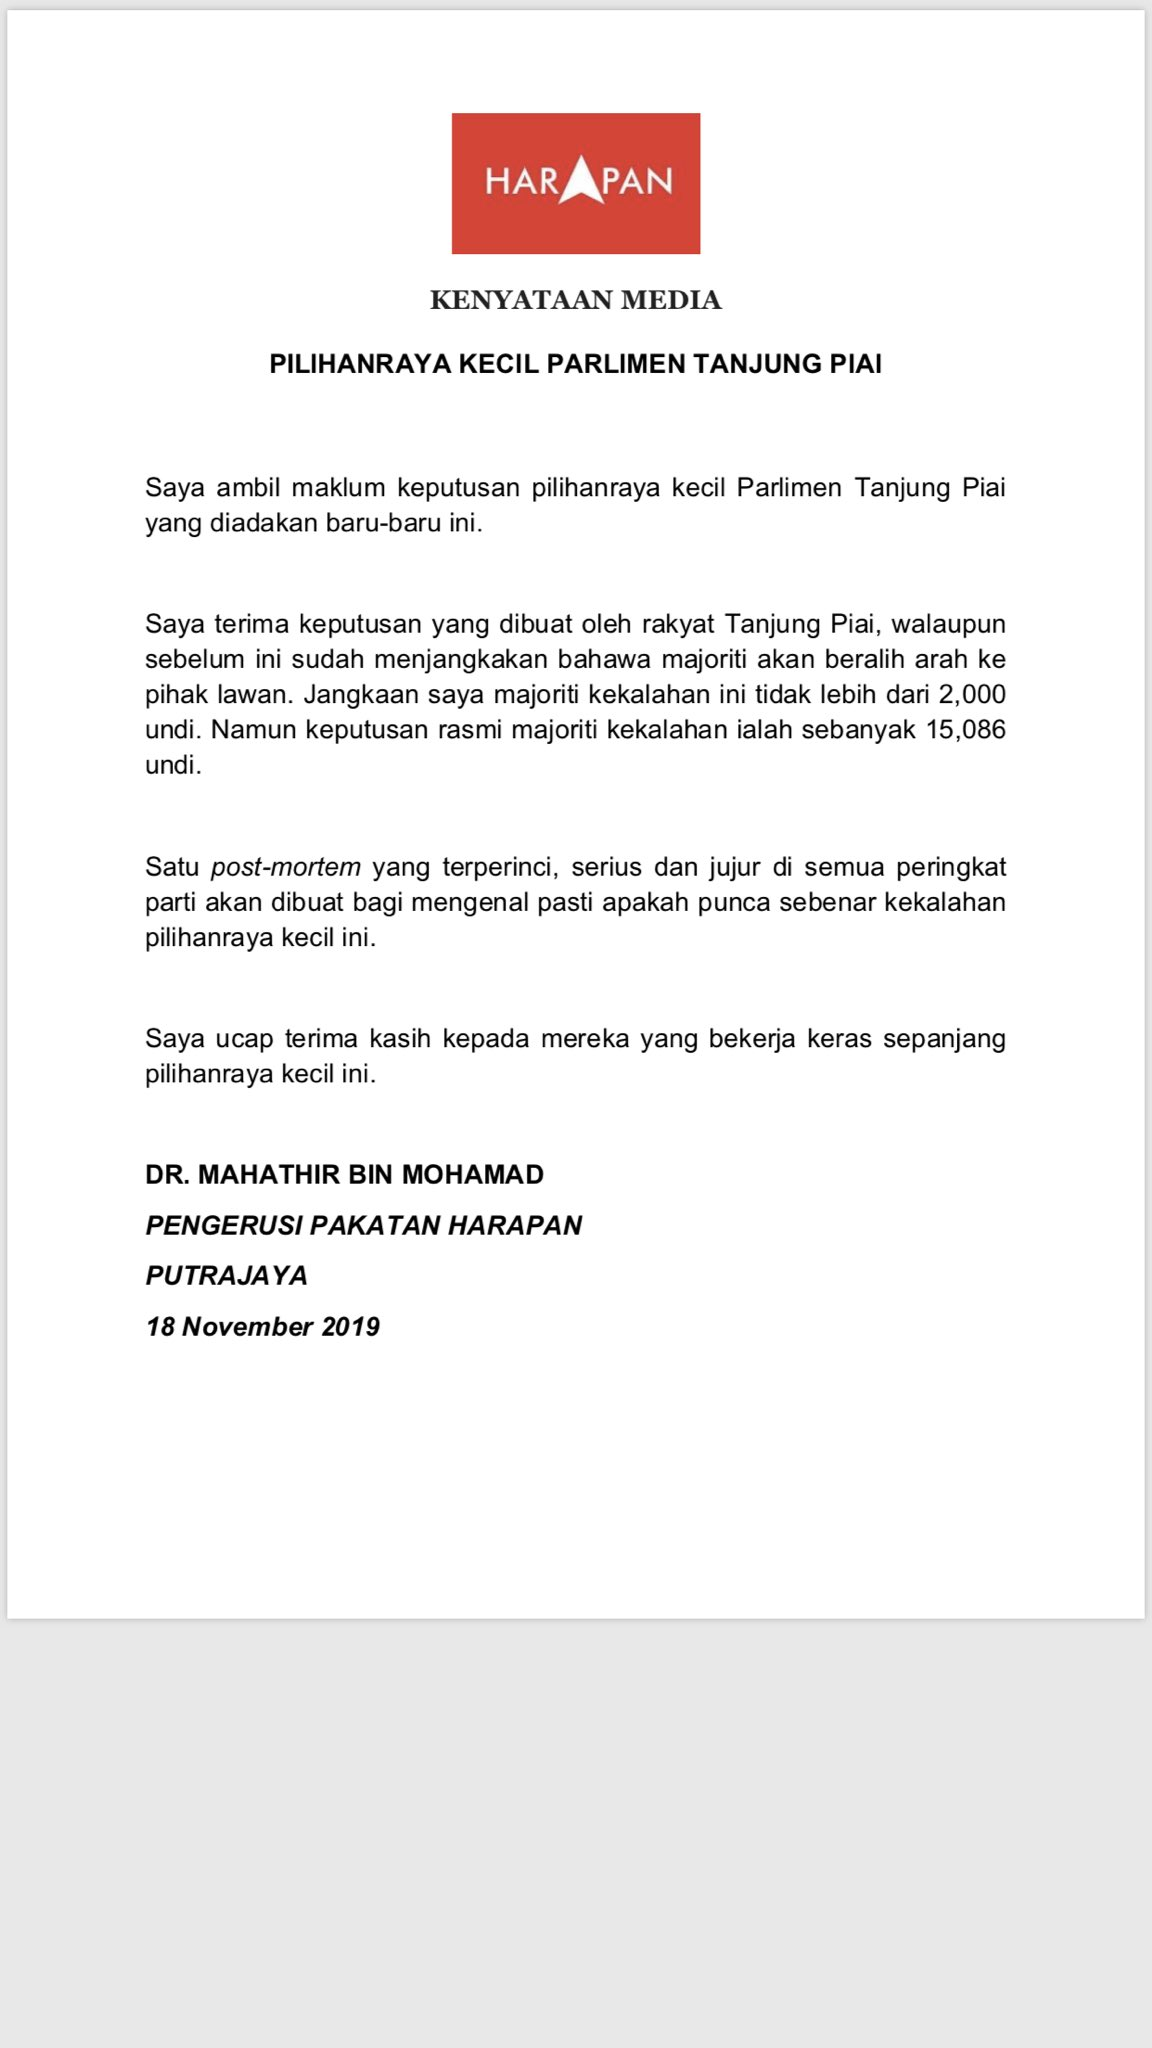 Melissa Goh On Twitter Dr Mahathir Said He S Expected Pakatan Harapan To Lose By A Smaller Margin Of 2000 Votes In Tanjung Piai Instead Of 15 000 Votes A Detailed Serious